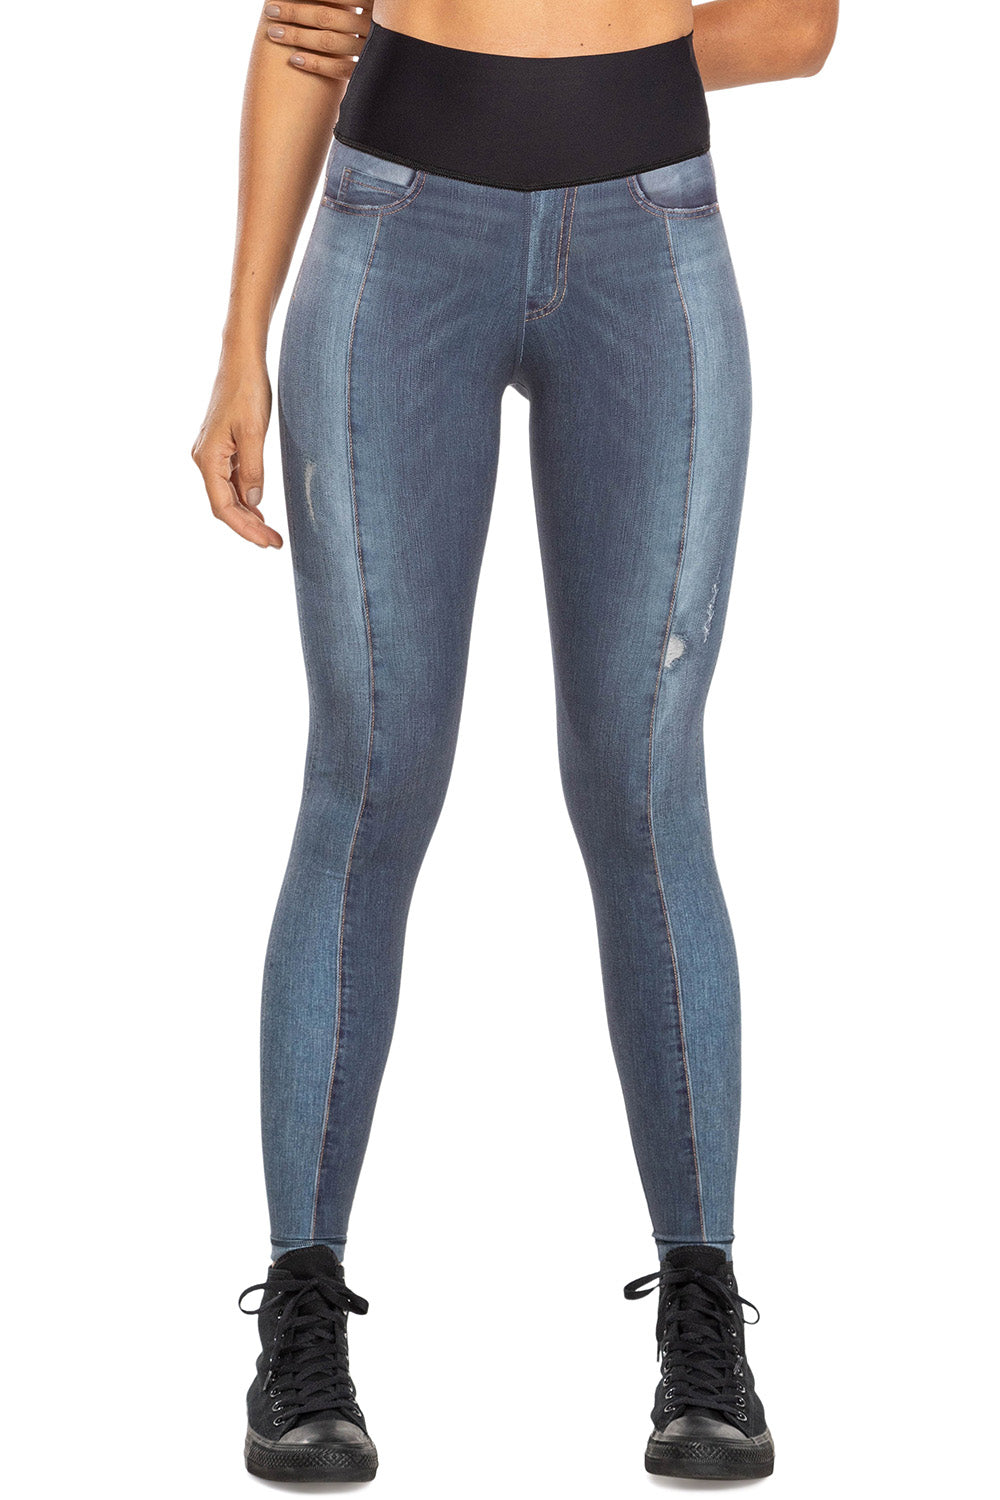 Jurere Denim Rever Tight